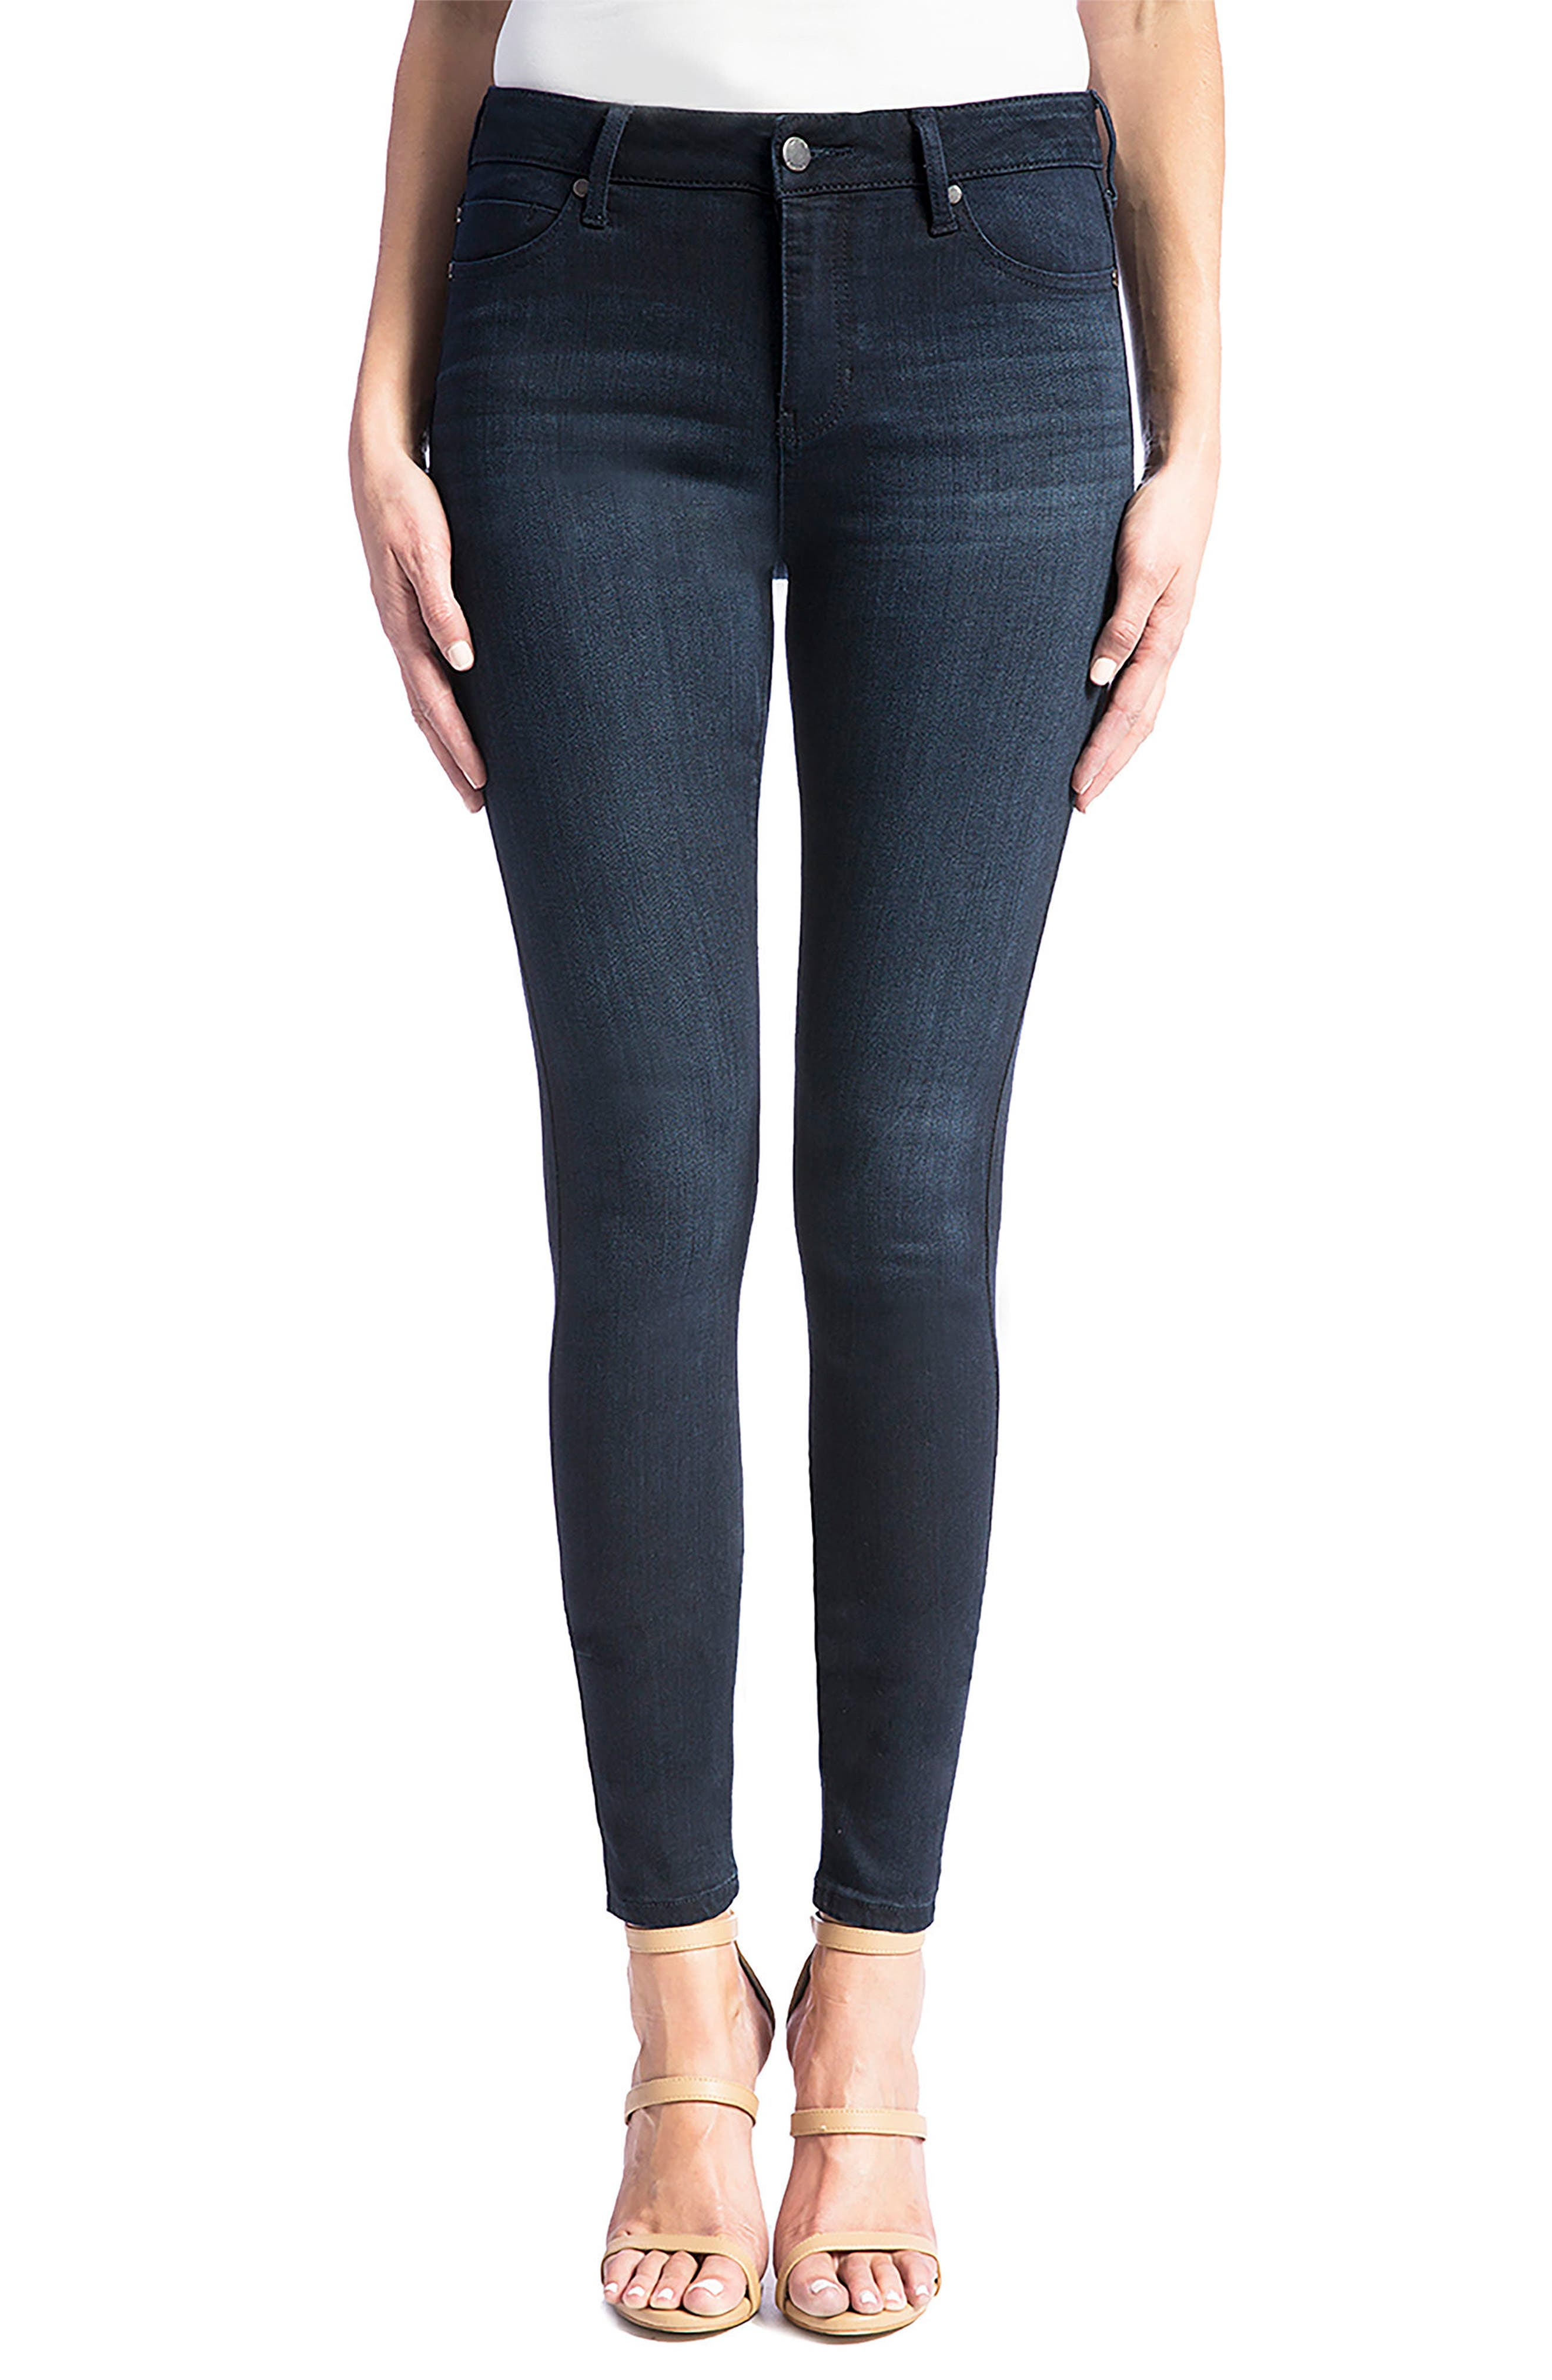 Jeans Co. Abby Stretch Skinny Jeans,                             Main thumbnail 1, color,                             402